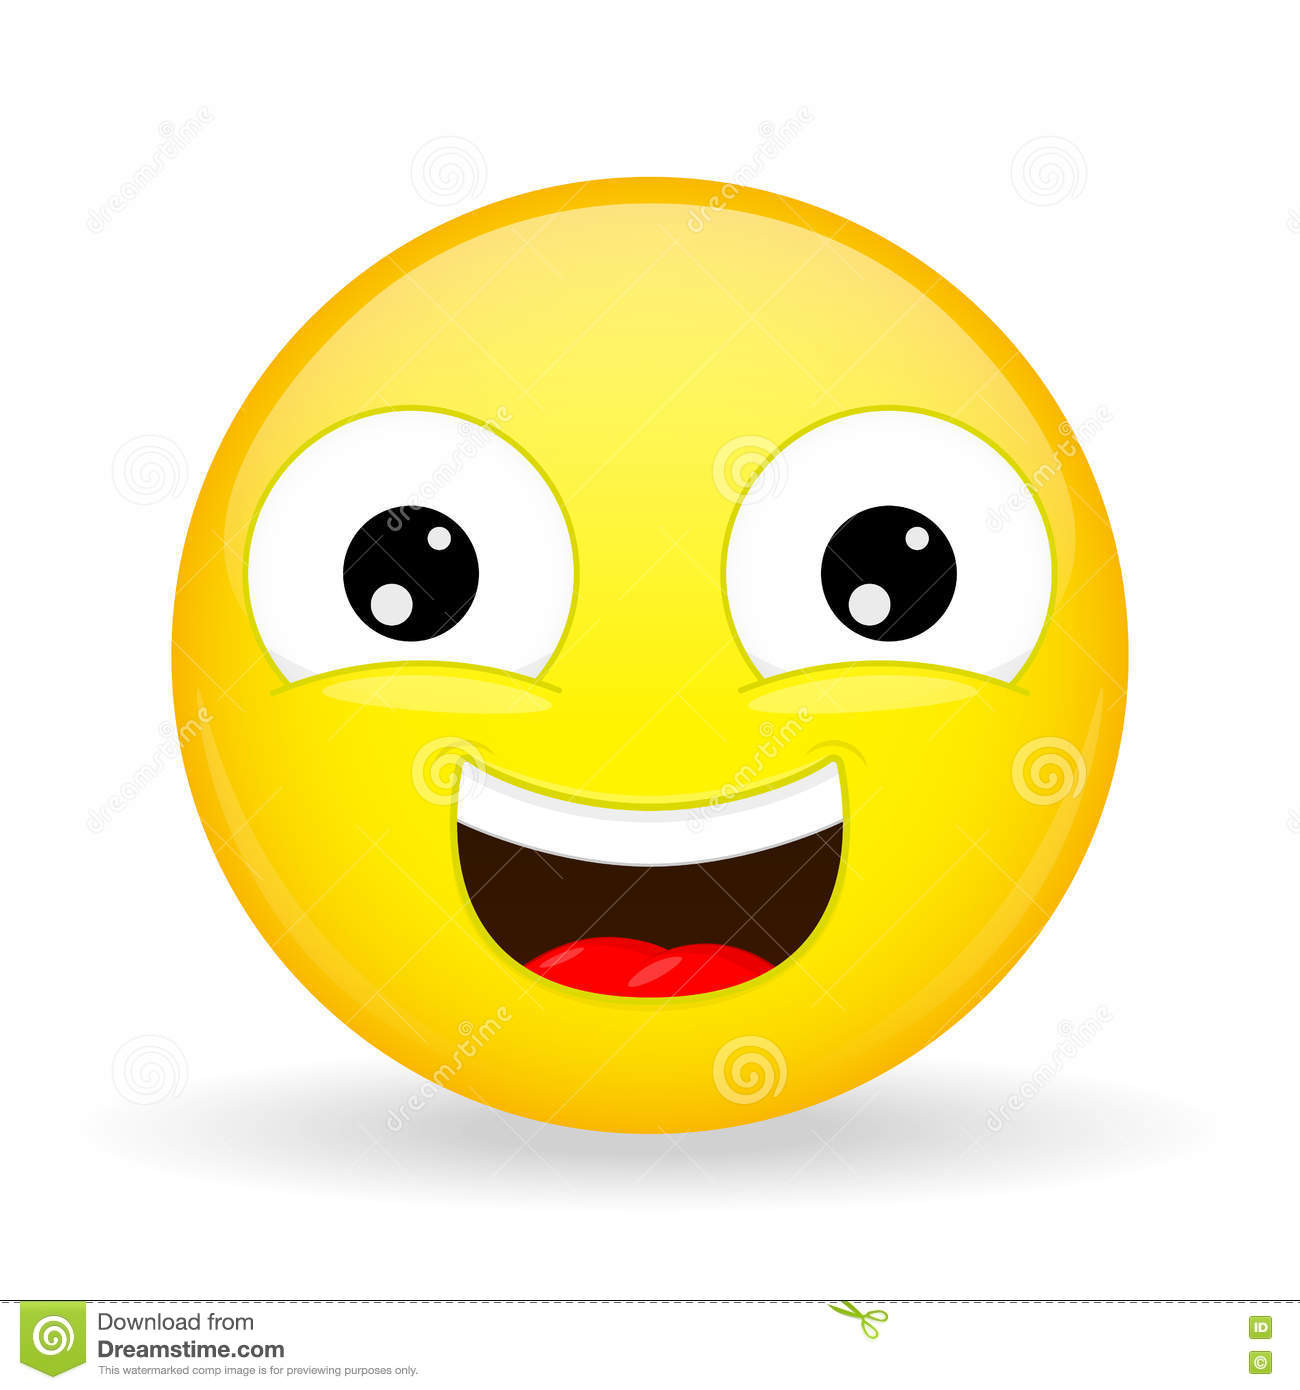 Laughing Emoji Emotion Of Happiness Sweet Smile Emoticon Stock Image